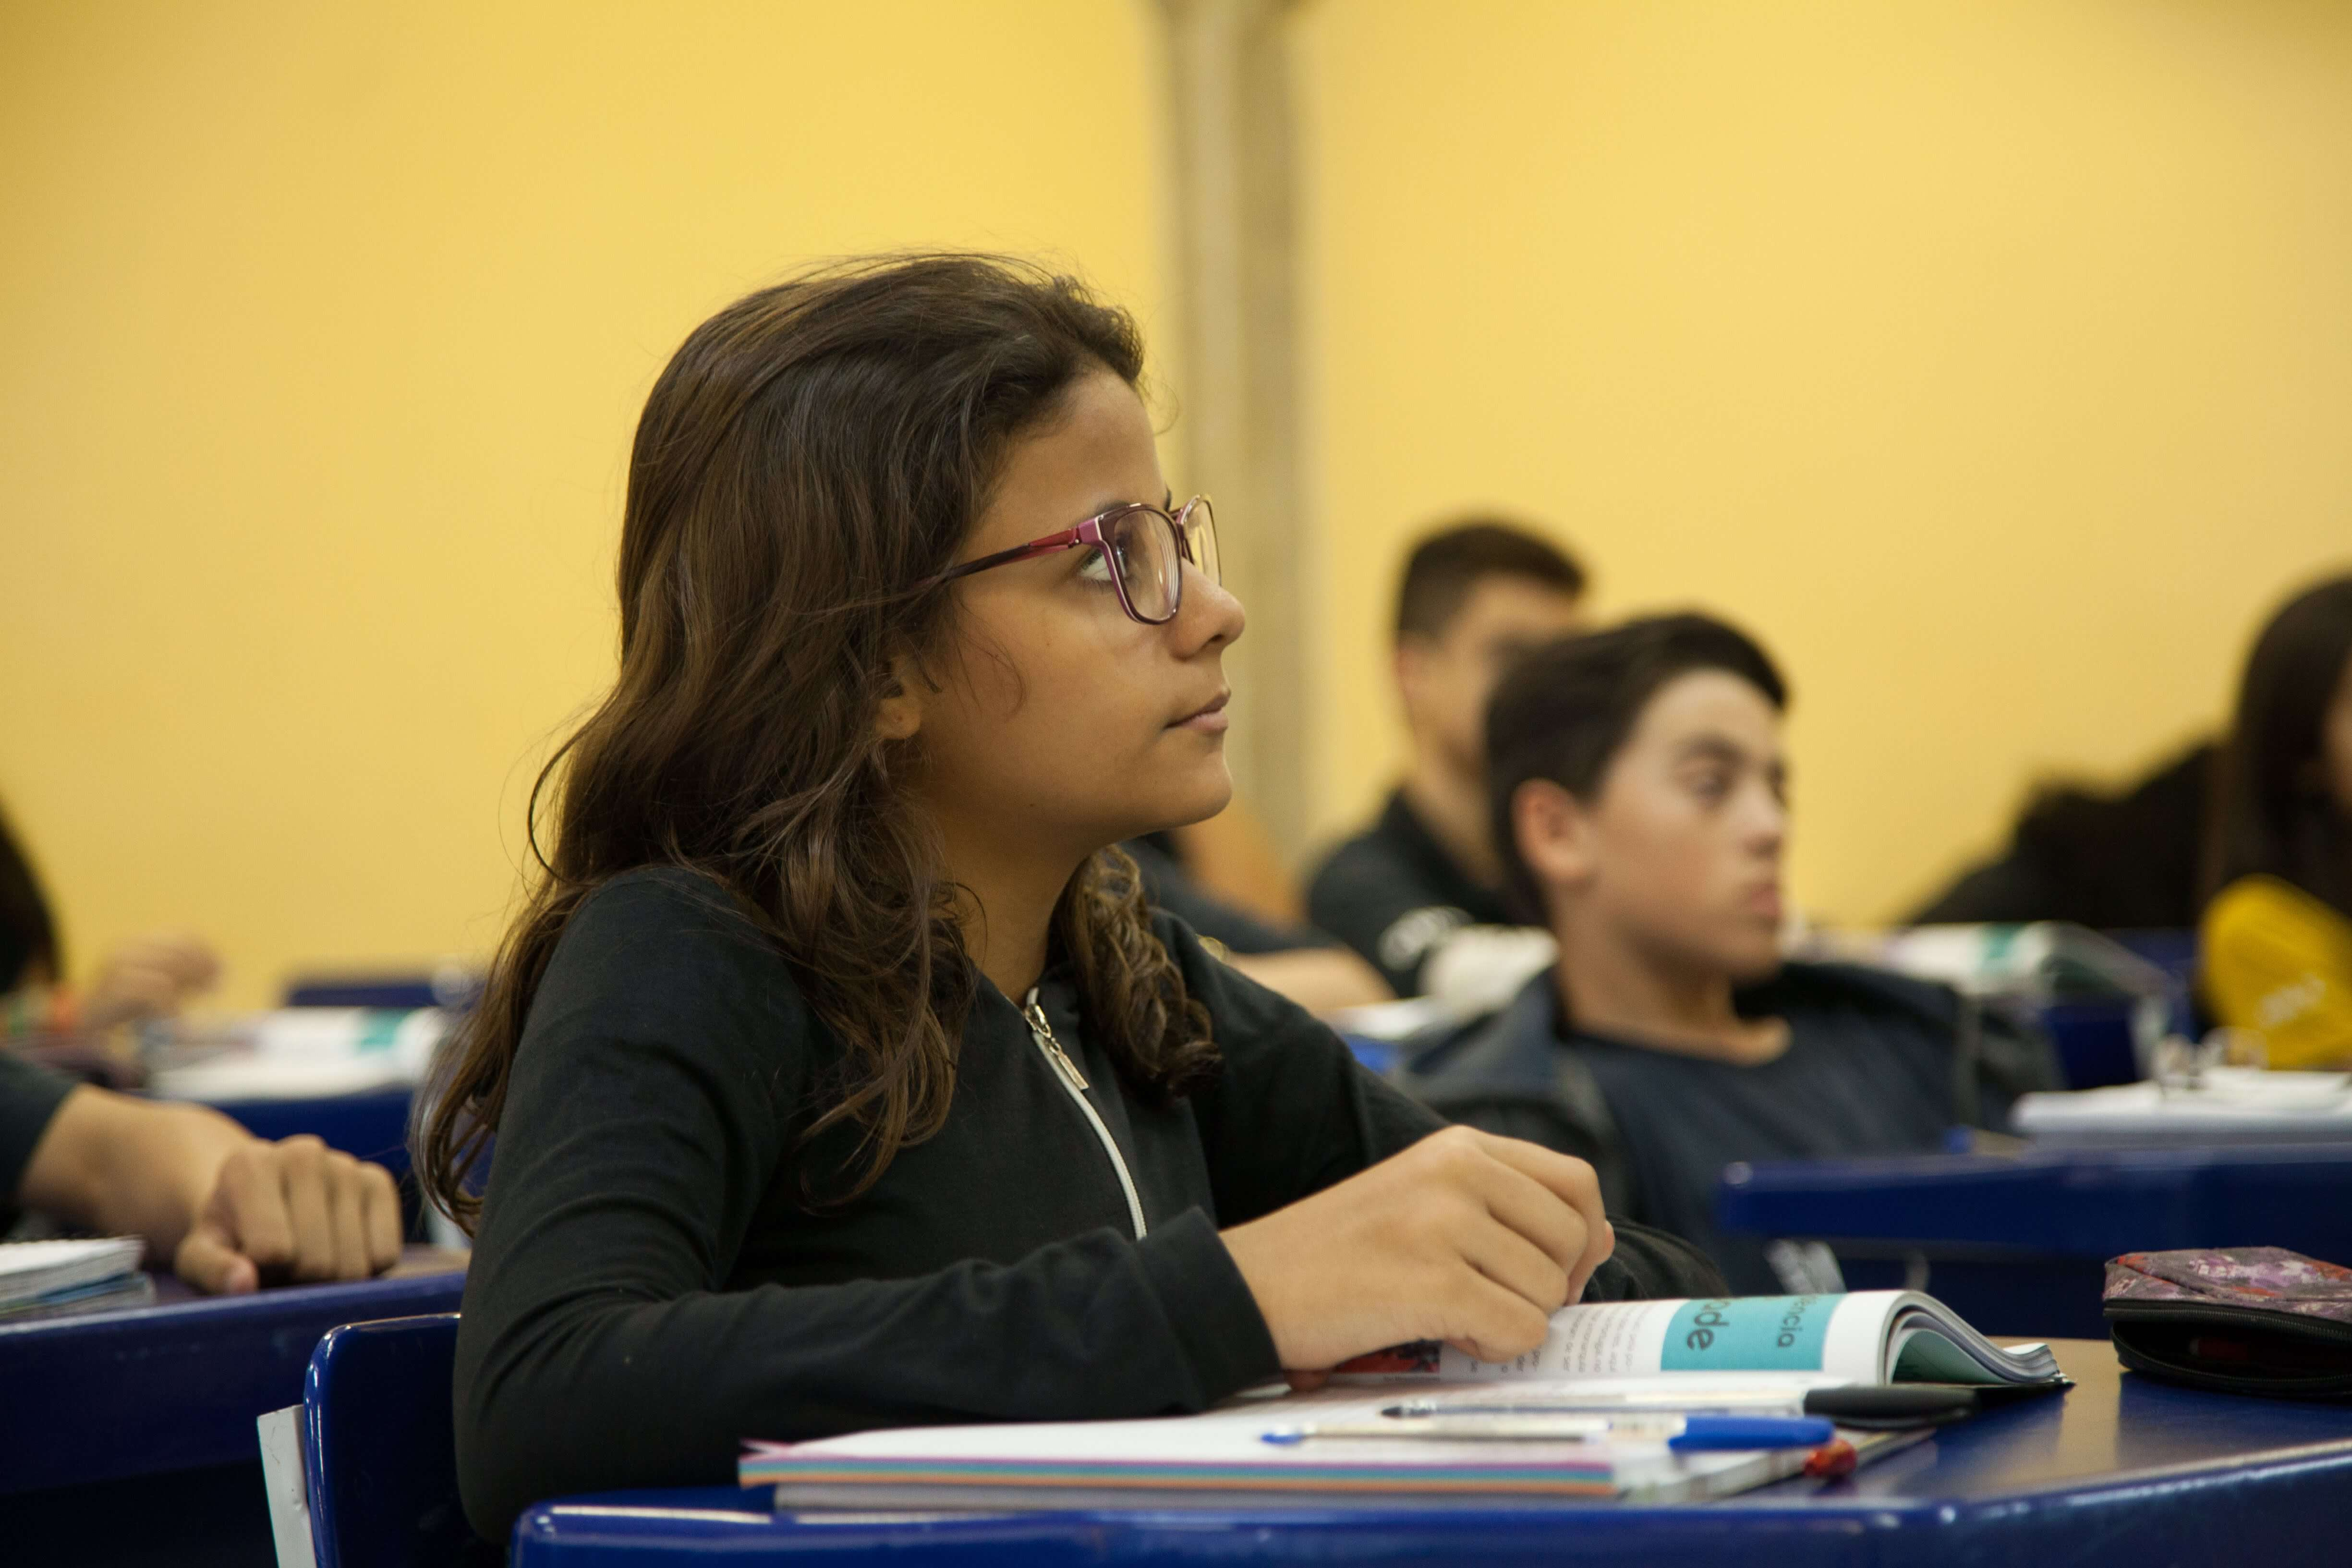 Most Brazilian Parents See Childrens' Education Declining